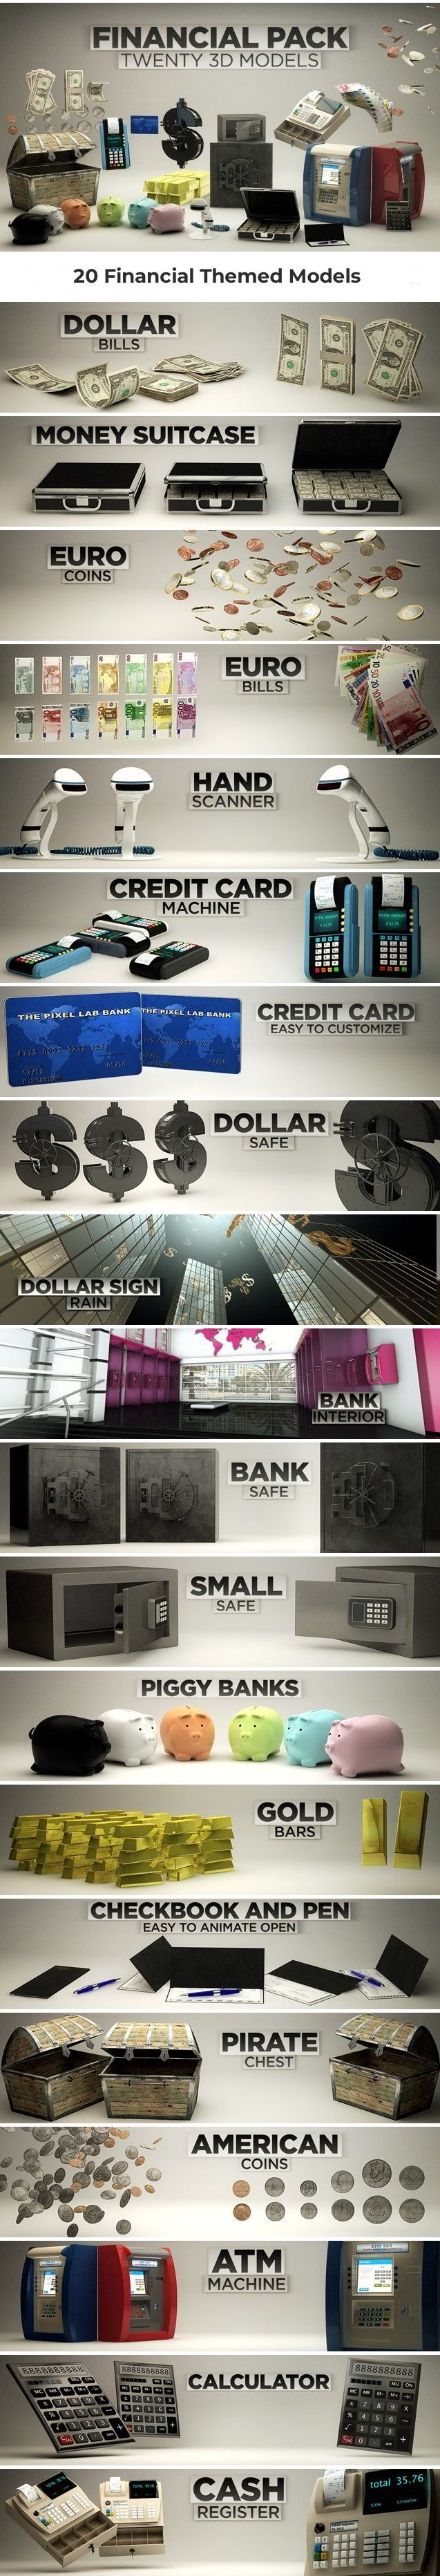 Financial Pack for Cinema4D